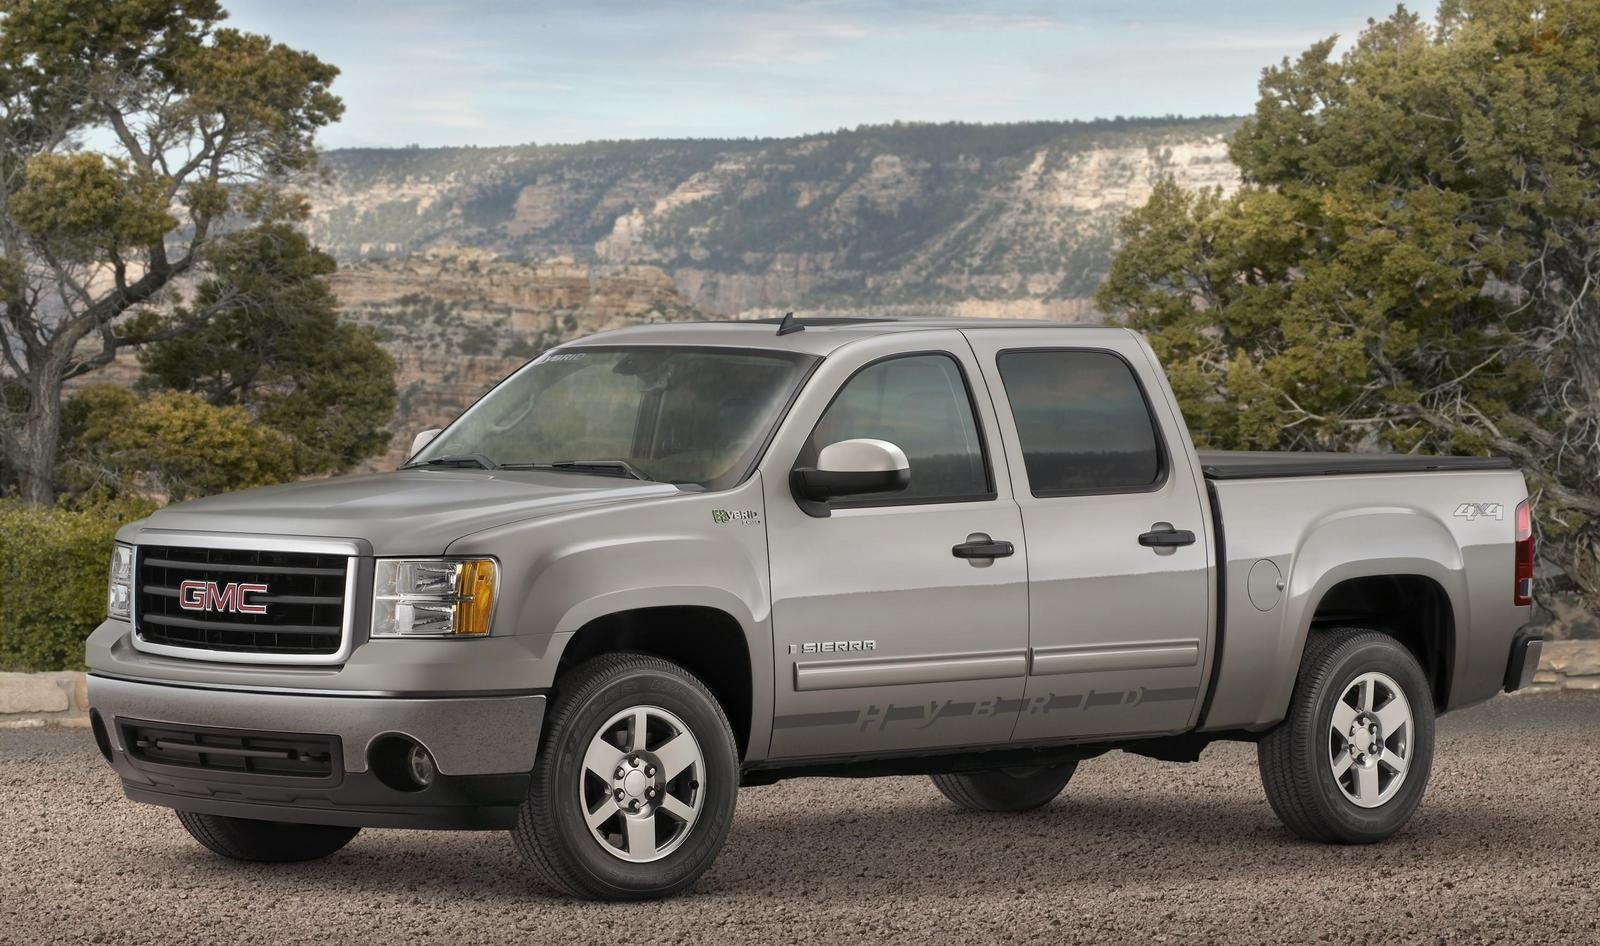 2009 gmc sierra hybrid 7_1600x0w gmc sierra reviews, specs & prices top speed  at gsmportal.co